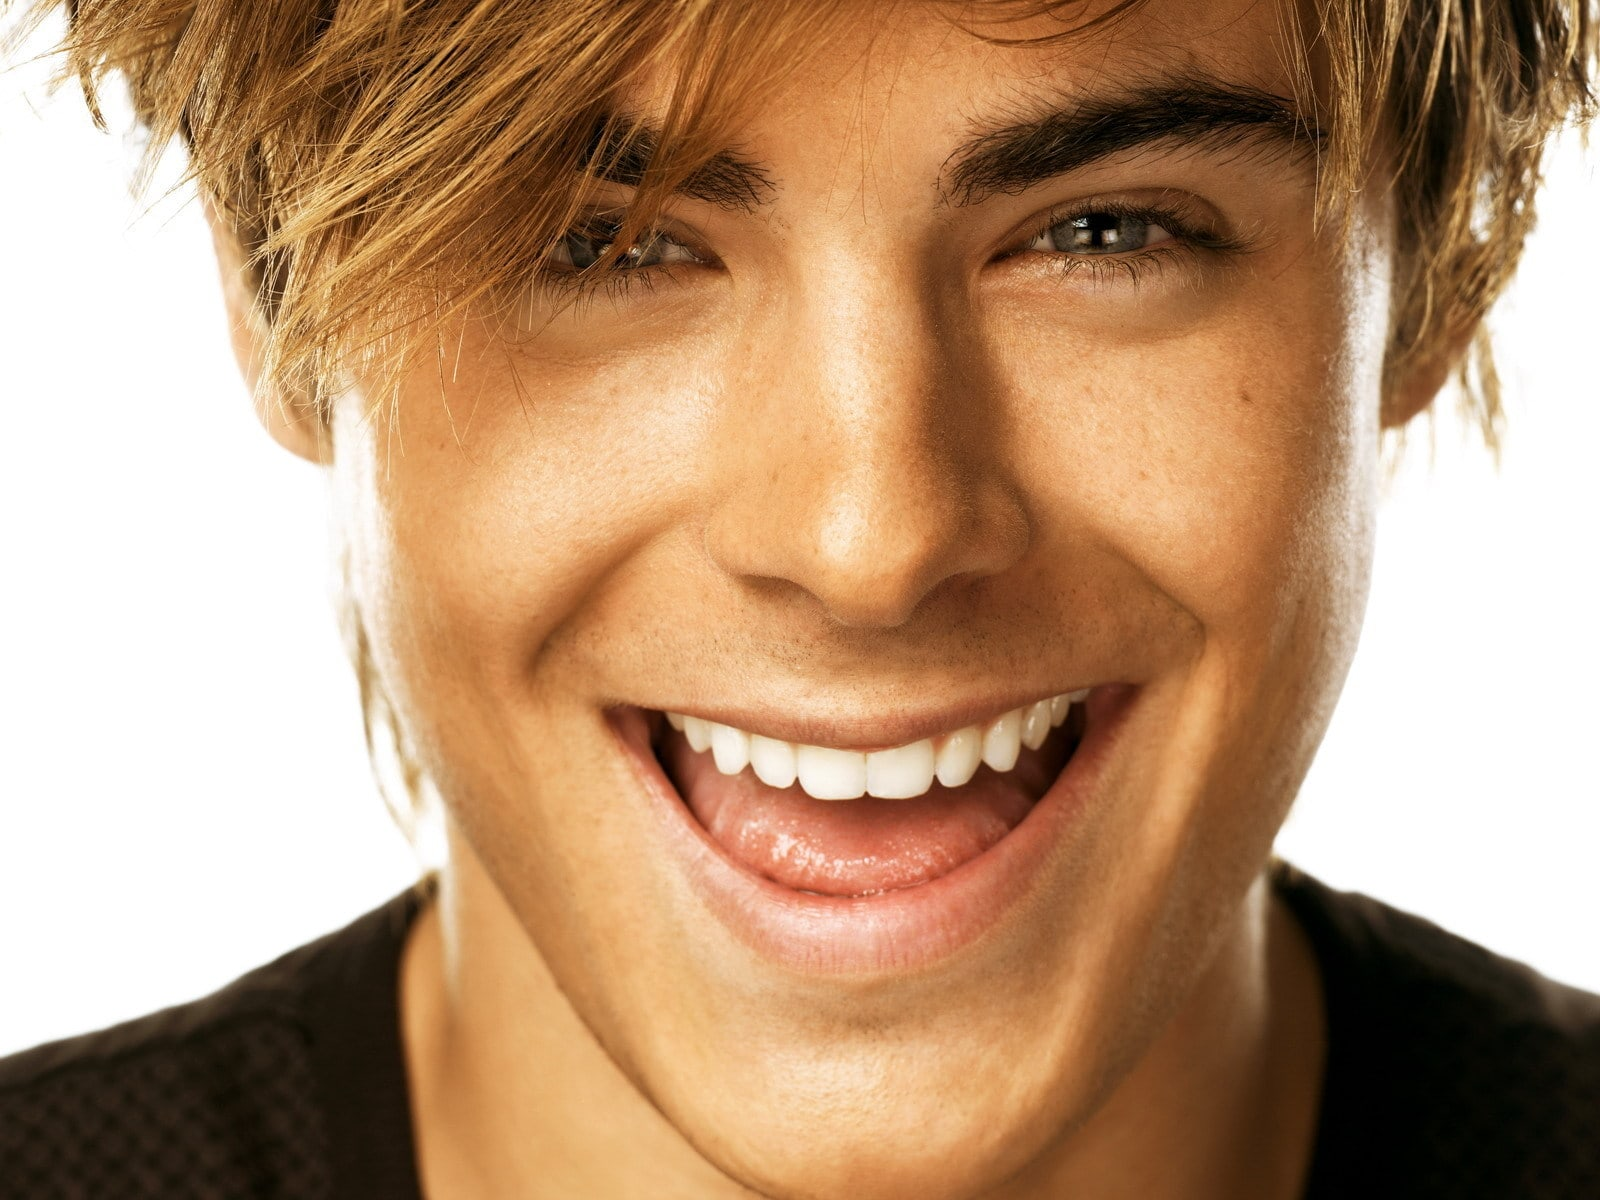 Zac Efron Backgrounds